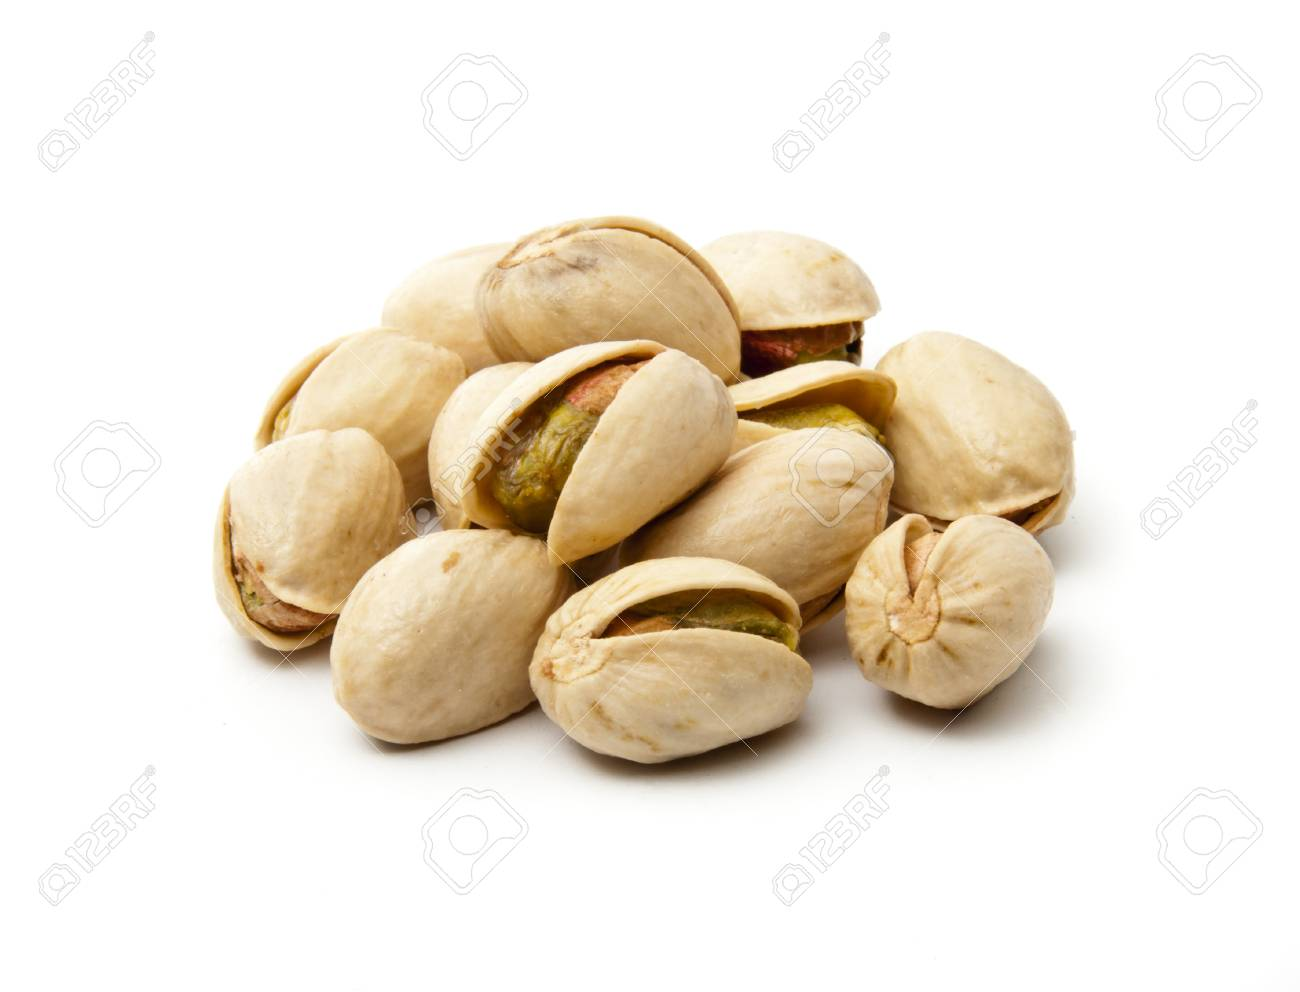 Pistachio Nuts Stock Photo - 14516746